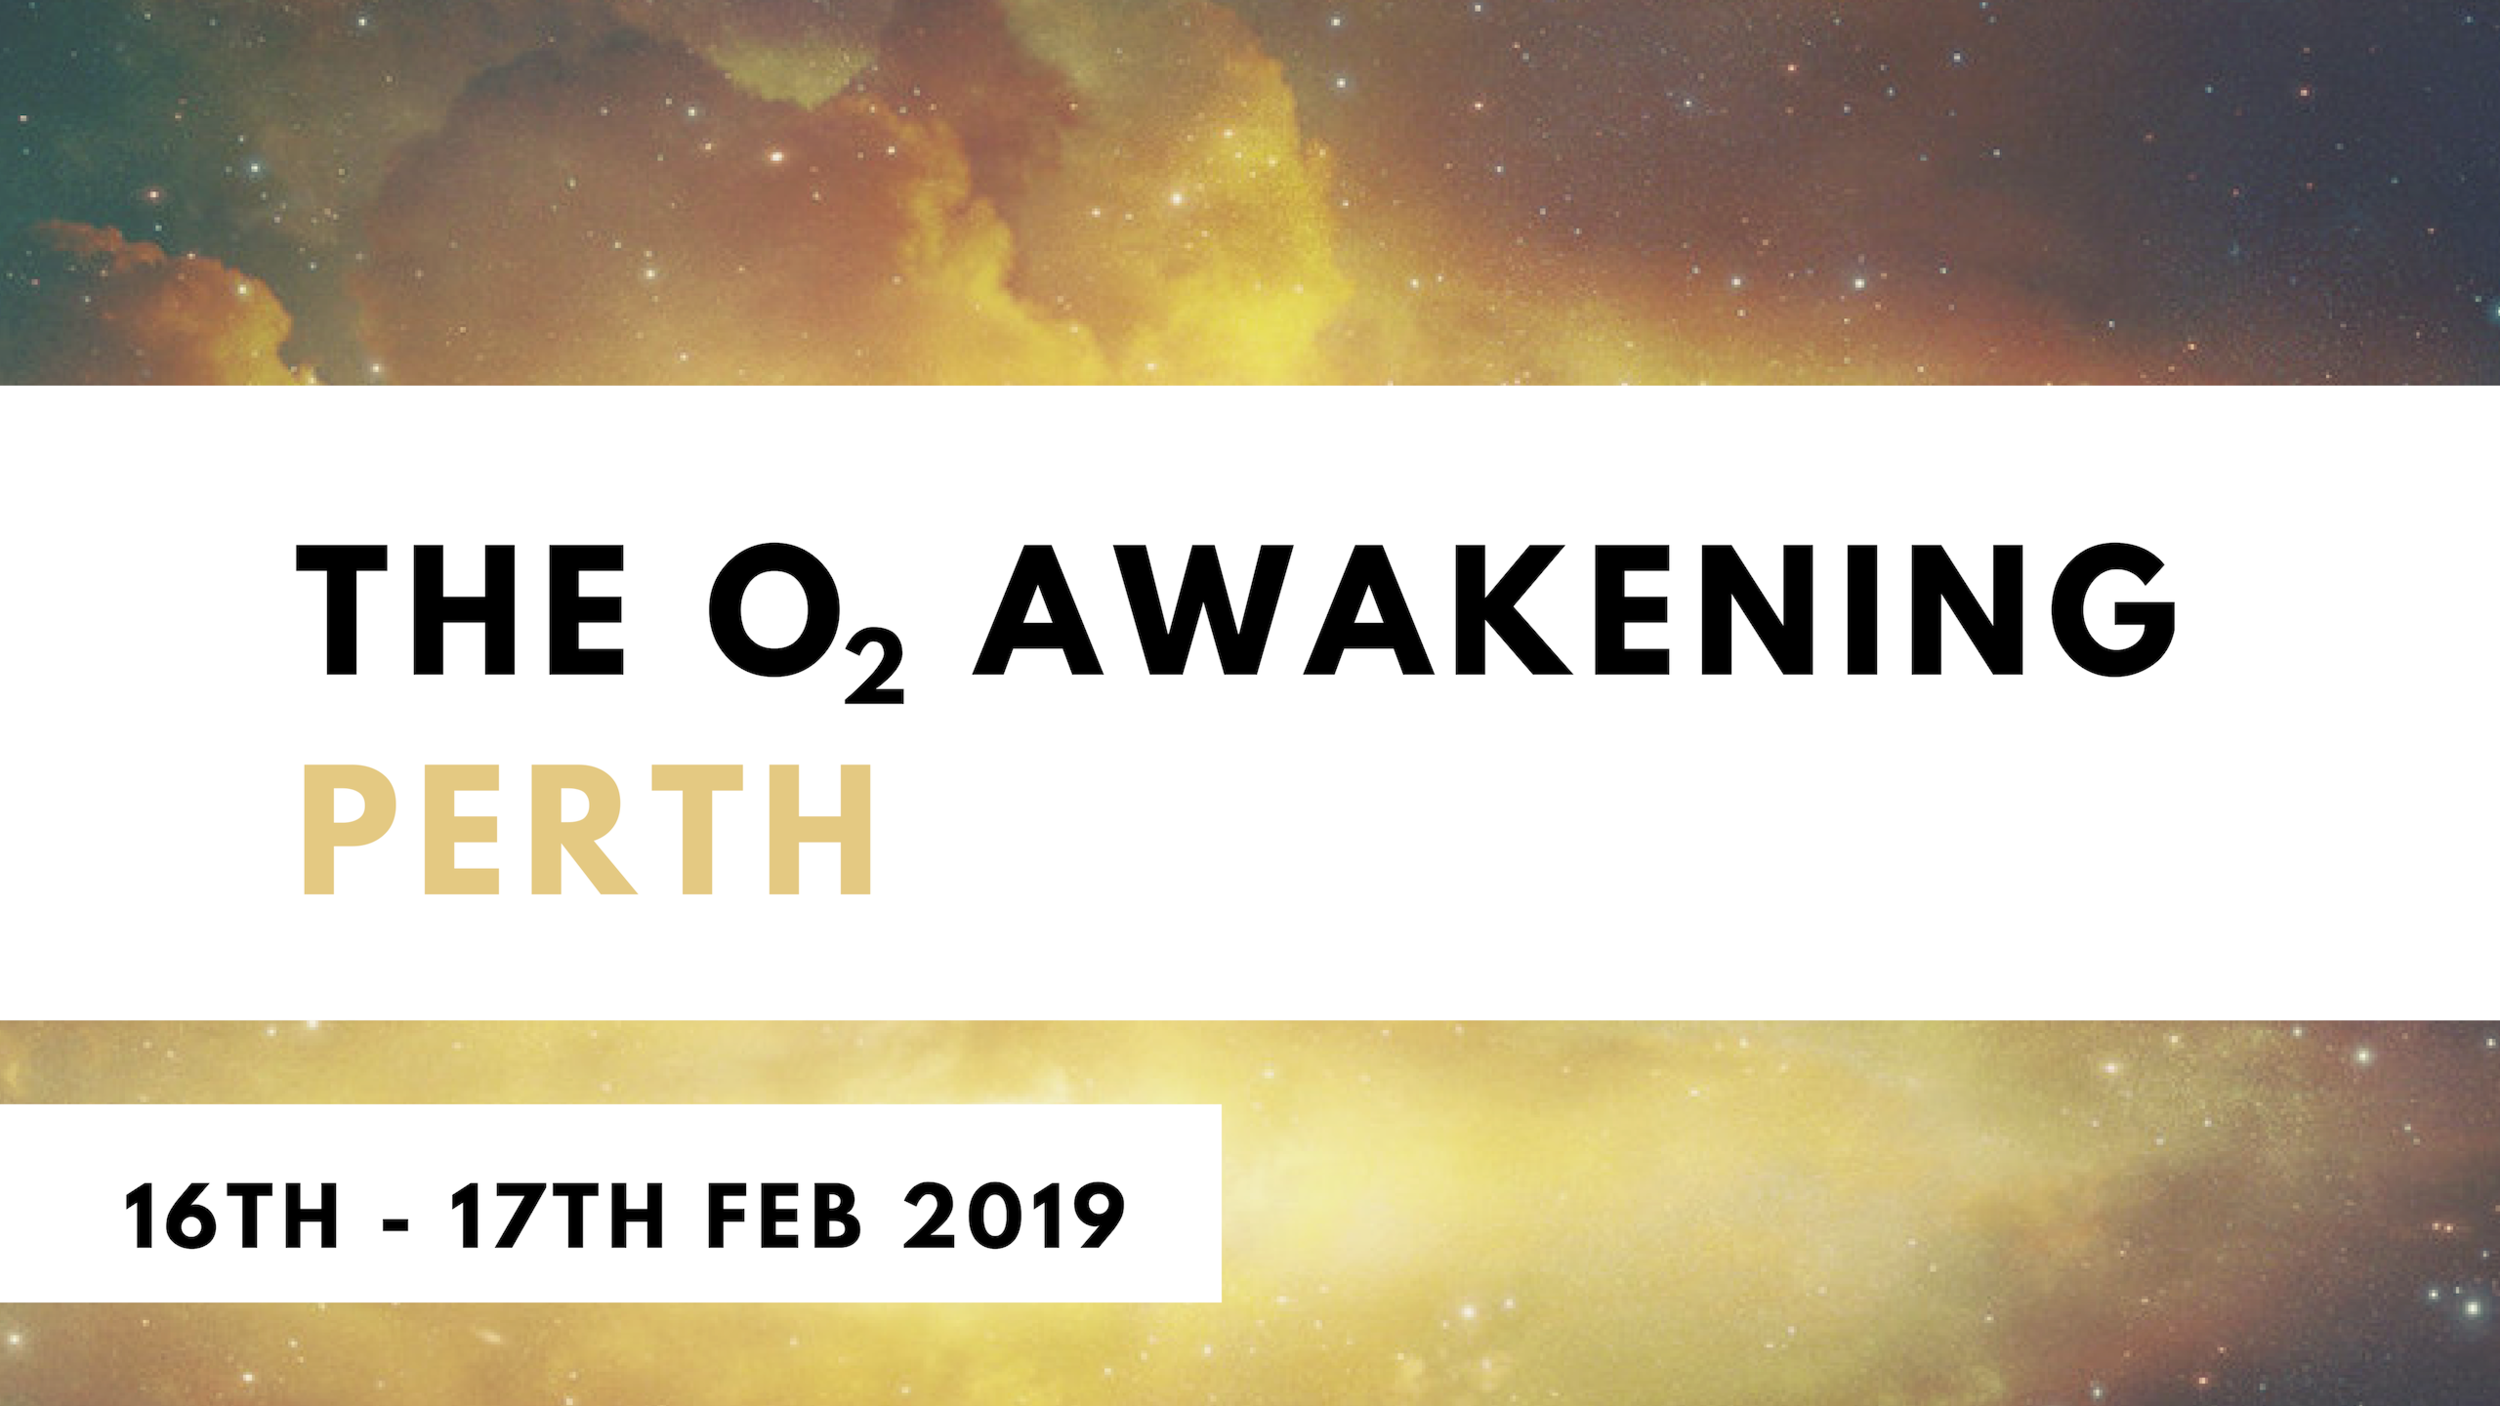 The O2 Awakening Perth banner 2019.png